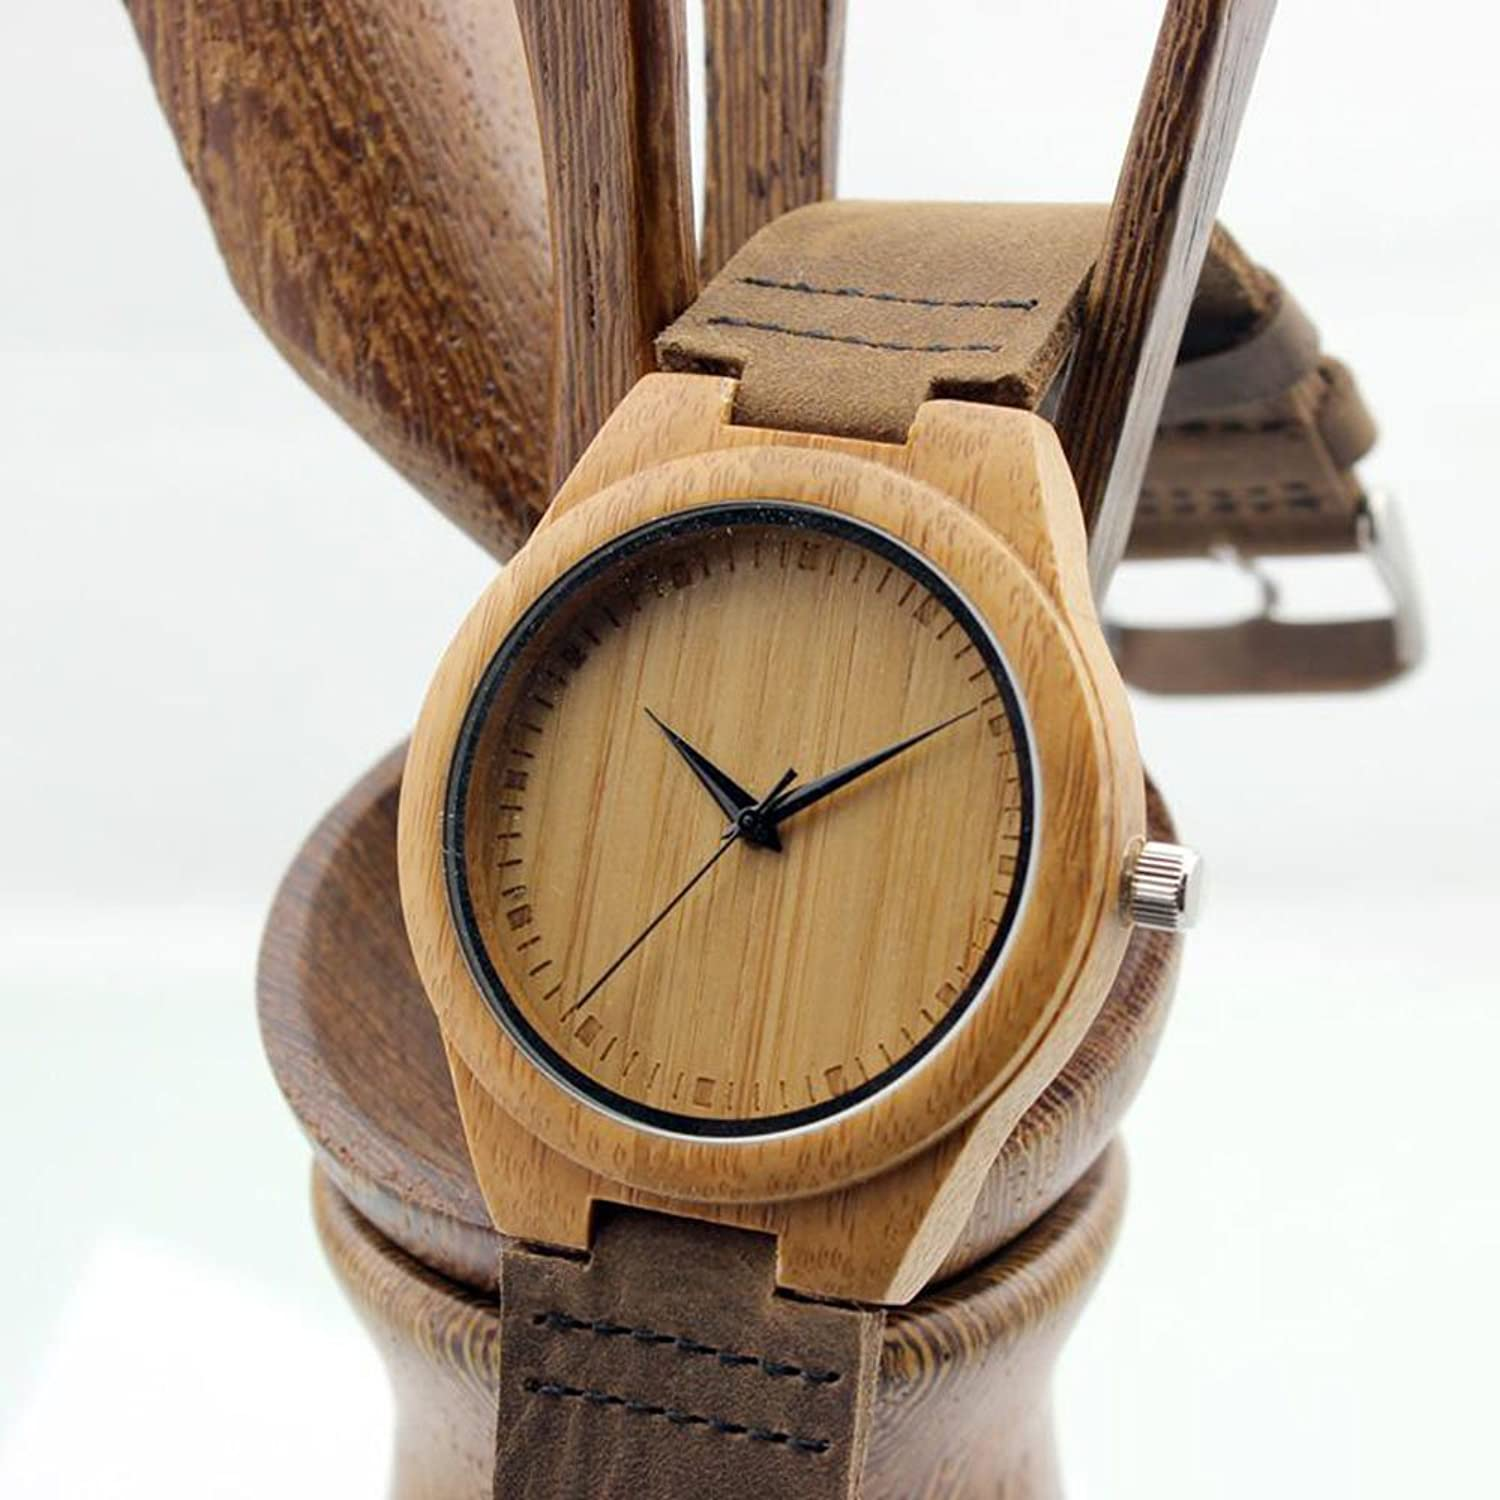 band bird wristwatch bobo handmade relogio wood wooden men products style universal wrist masculino watches masculine trendy watch legend hot from natural selling b